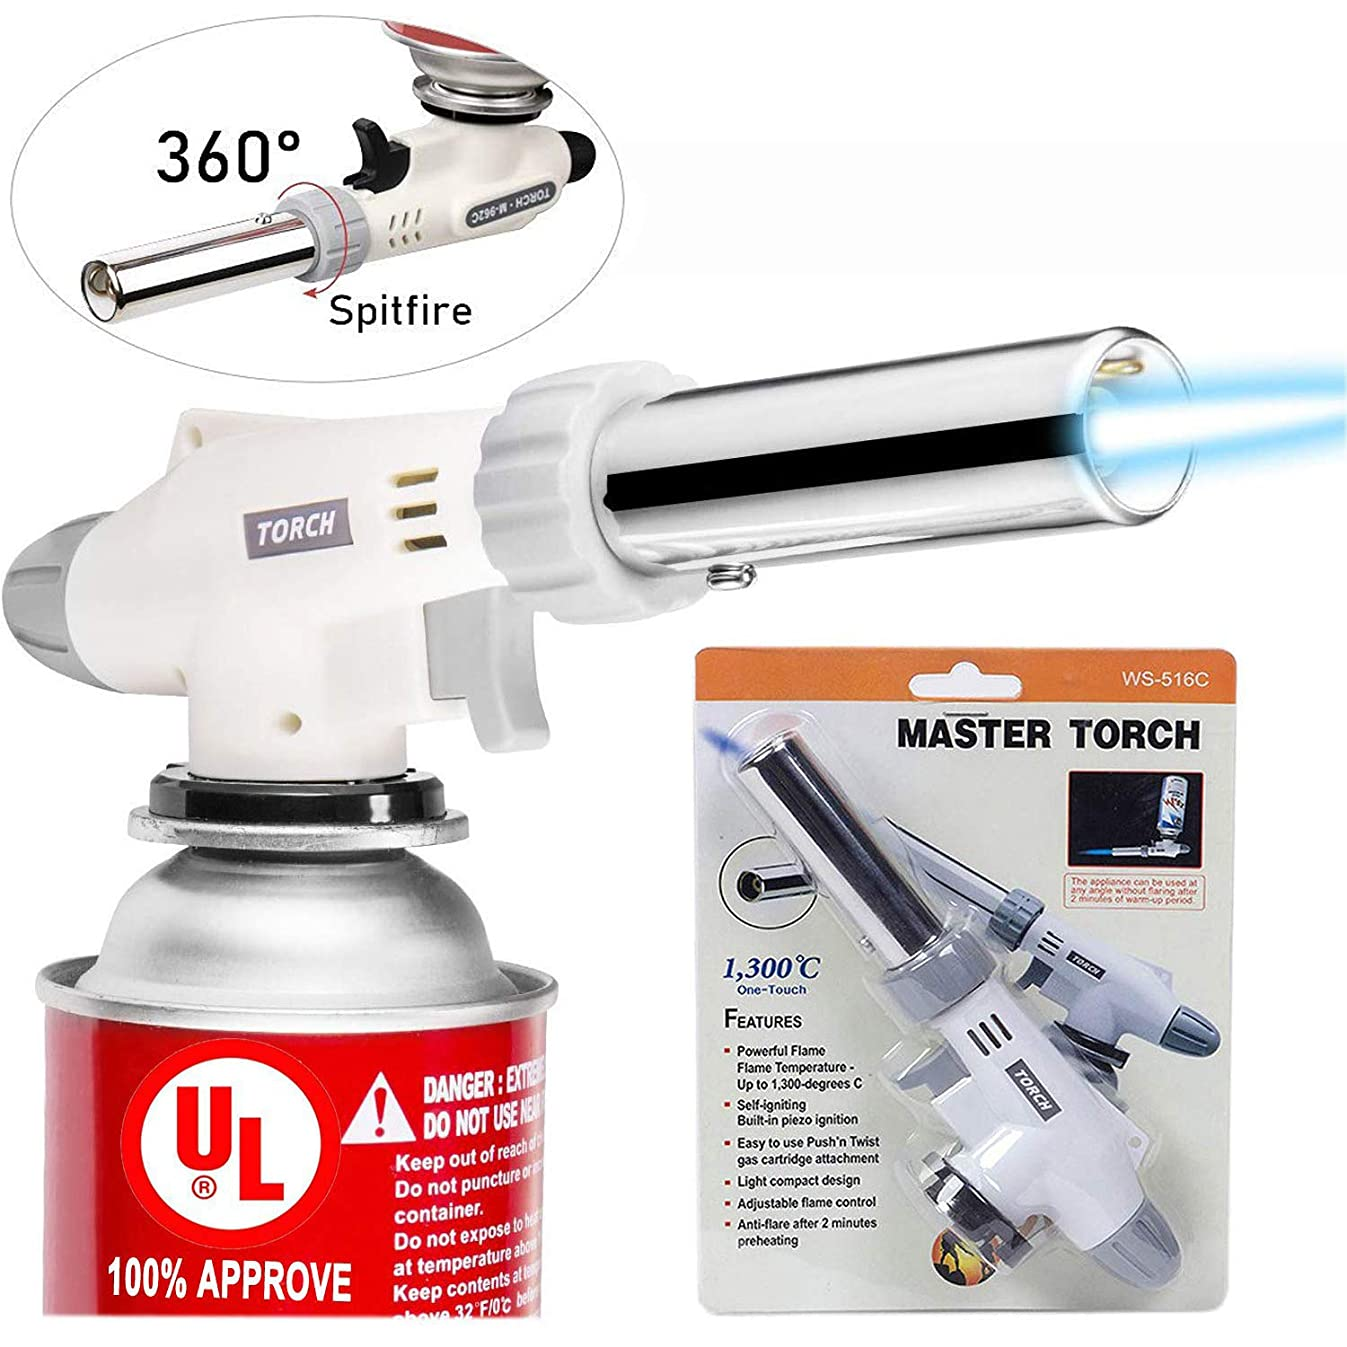 Butane Torch Kitchen Blow Torch, UCOFFEE Culinary Cooking Torch Chef Torches Lighter Adjustable Flame With Safety Lock For Creme Brulee, Searing, Baking, BBQ (Butane Gas Not Included)